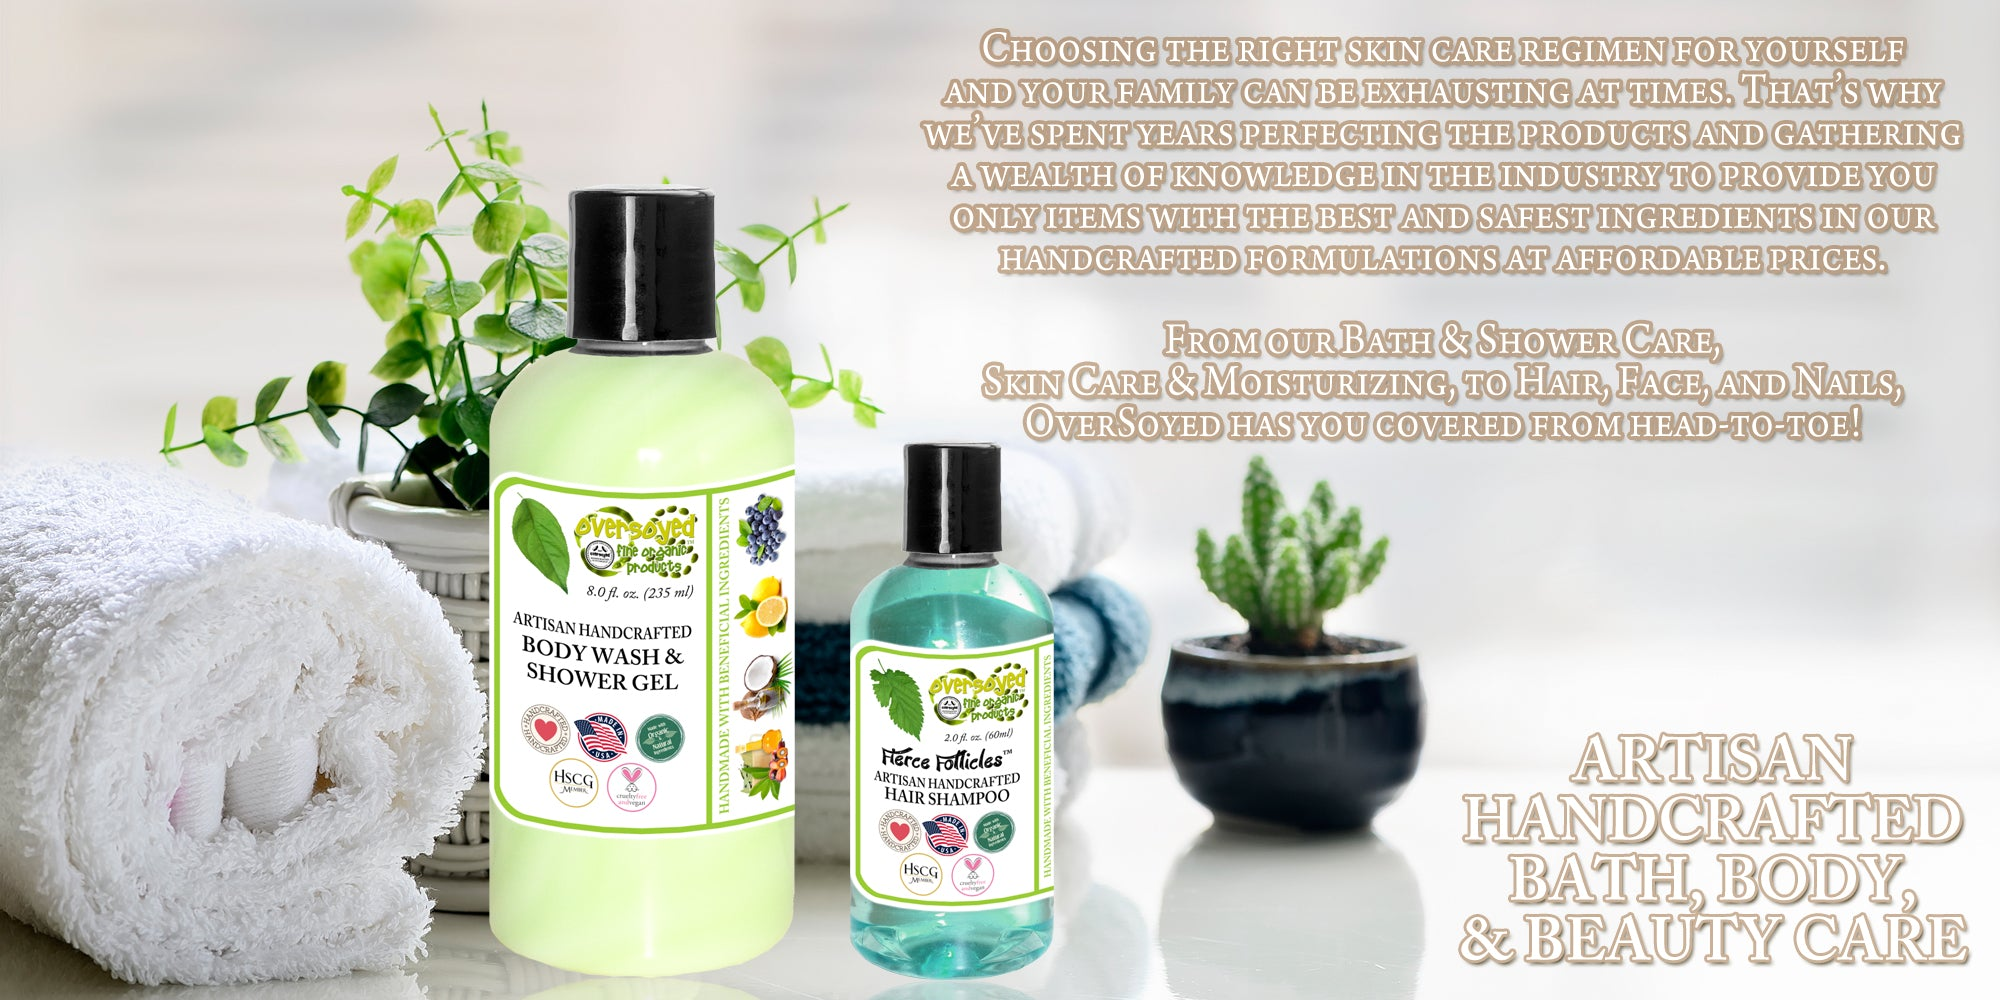 OverSoyed Fine Organic Products - Artisan Handcrafted Bath, Body, and Beauty Care